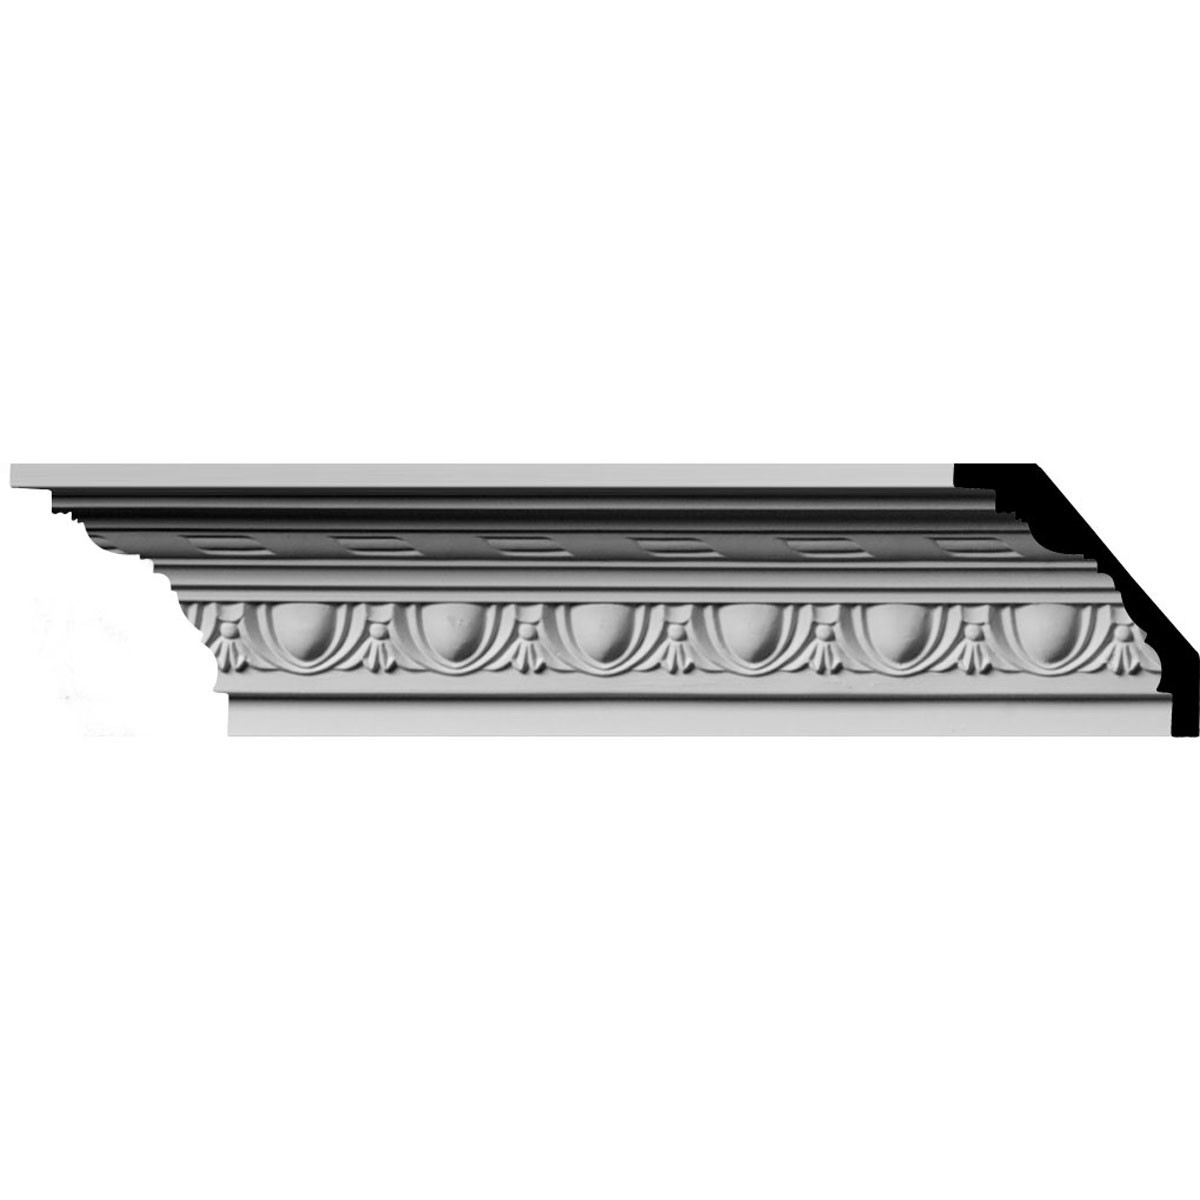 """EM-MLD03X03X04JA - 3""""H x 3""""P x 4 1/4""""F x 96""""L, (1 7/8"""" Repeat) Jackson Egg & Dart with Rope Crown Moulding"""